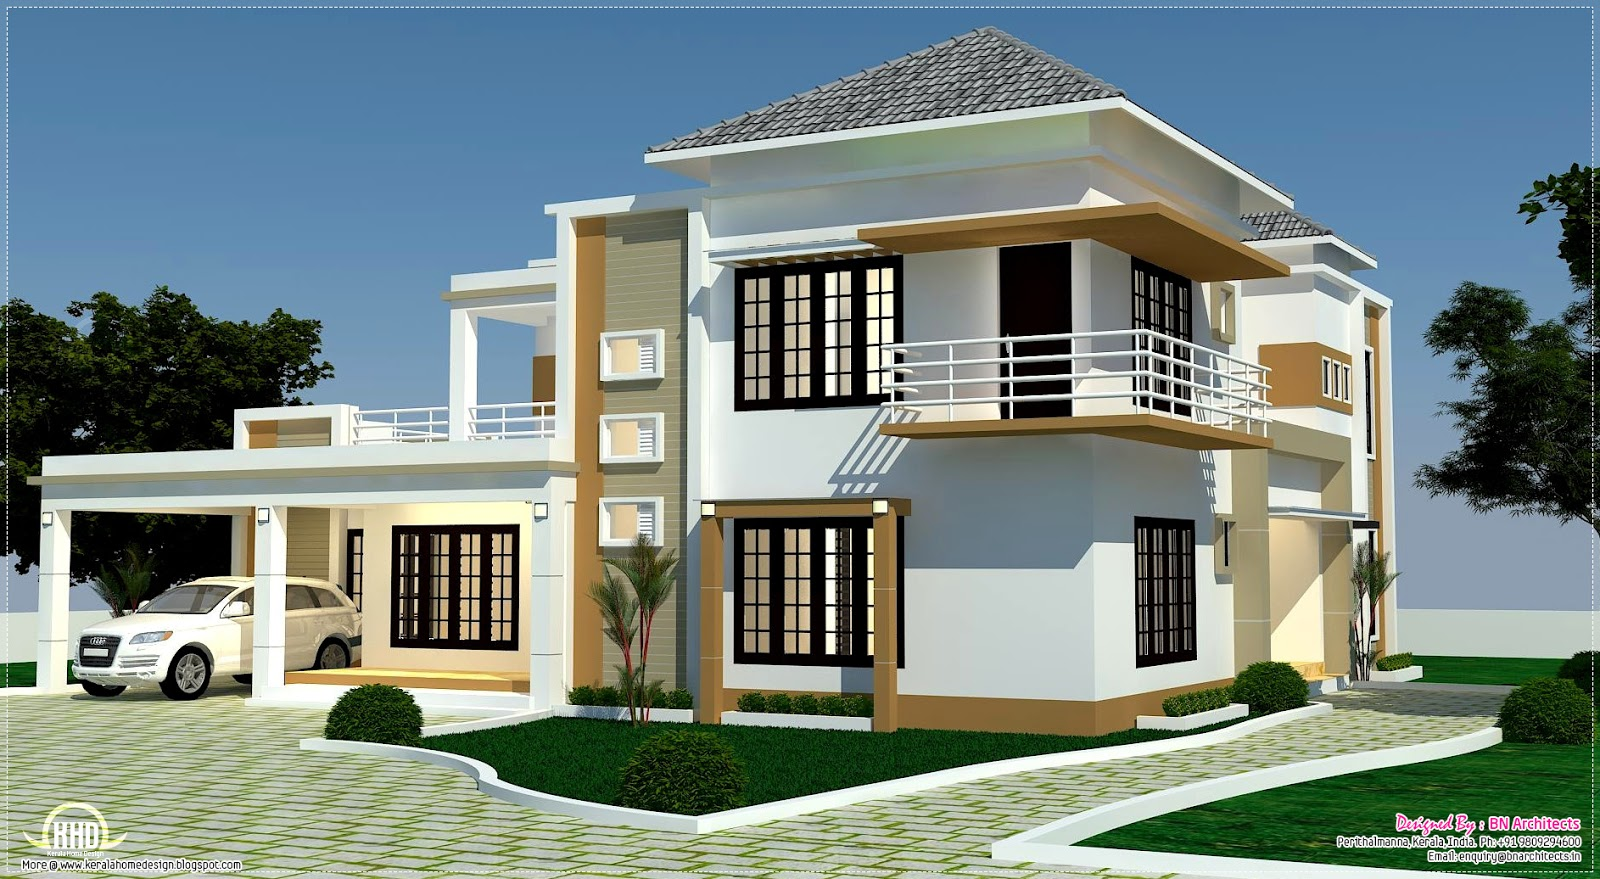 Floor plan 3d views and interiors of 4 bedroom villa Plans for villas